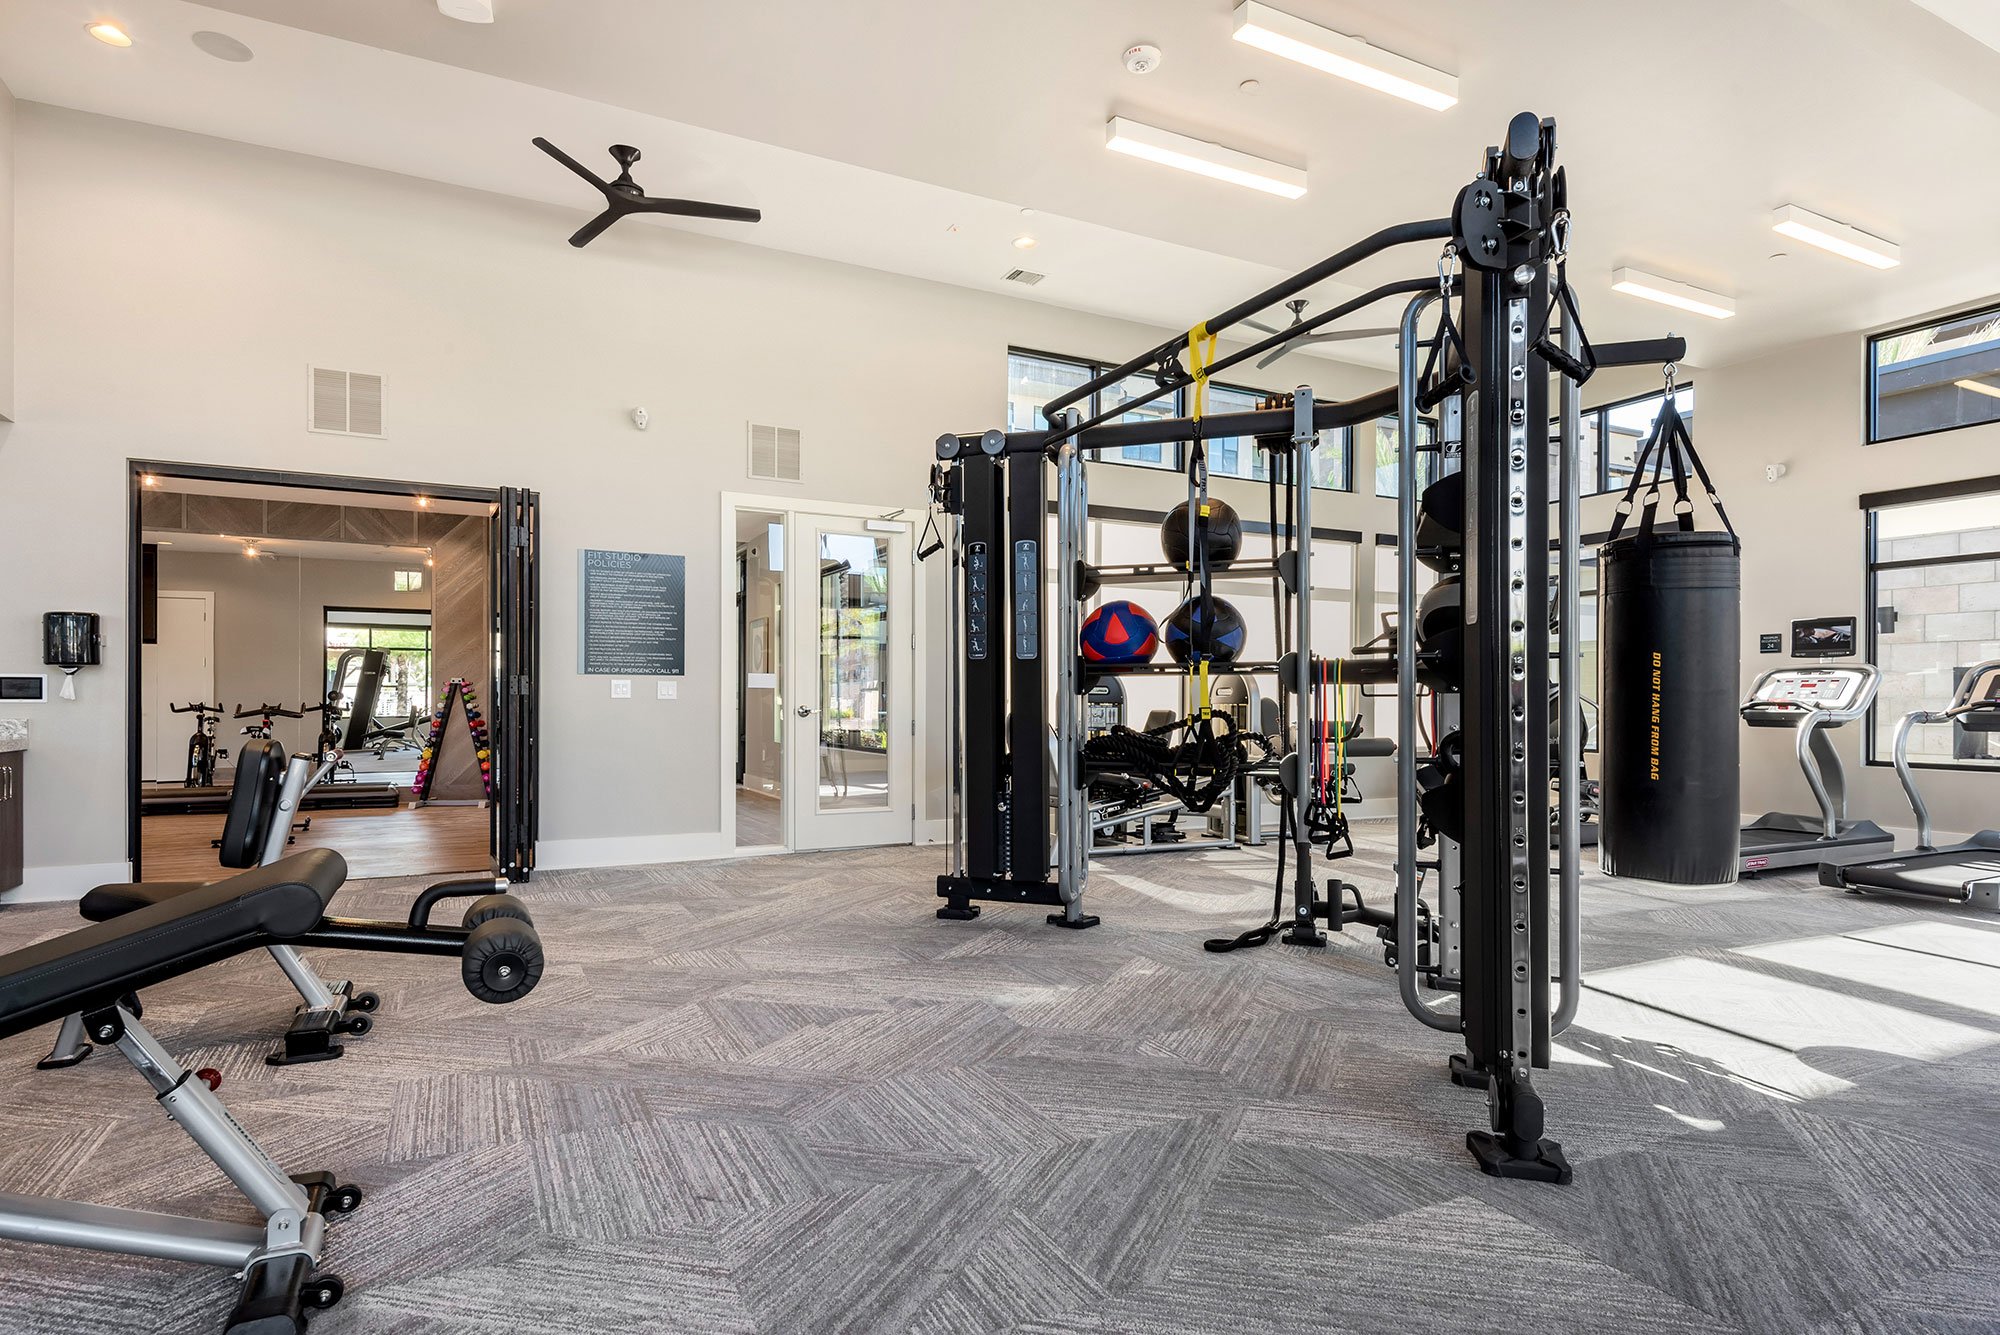 Riata - Fitness room with resistance band machine